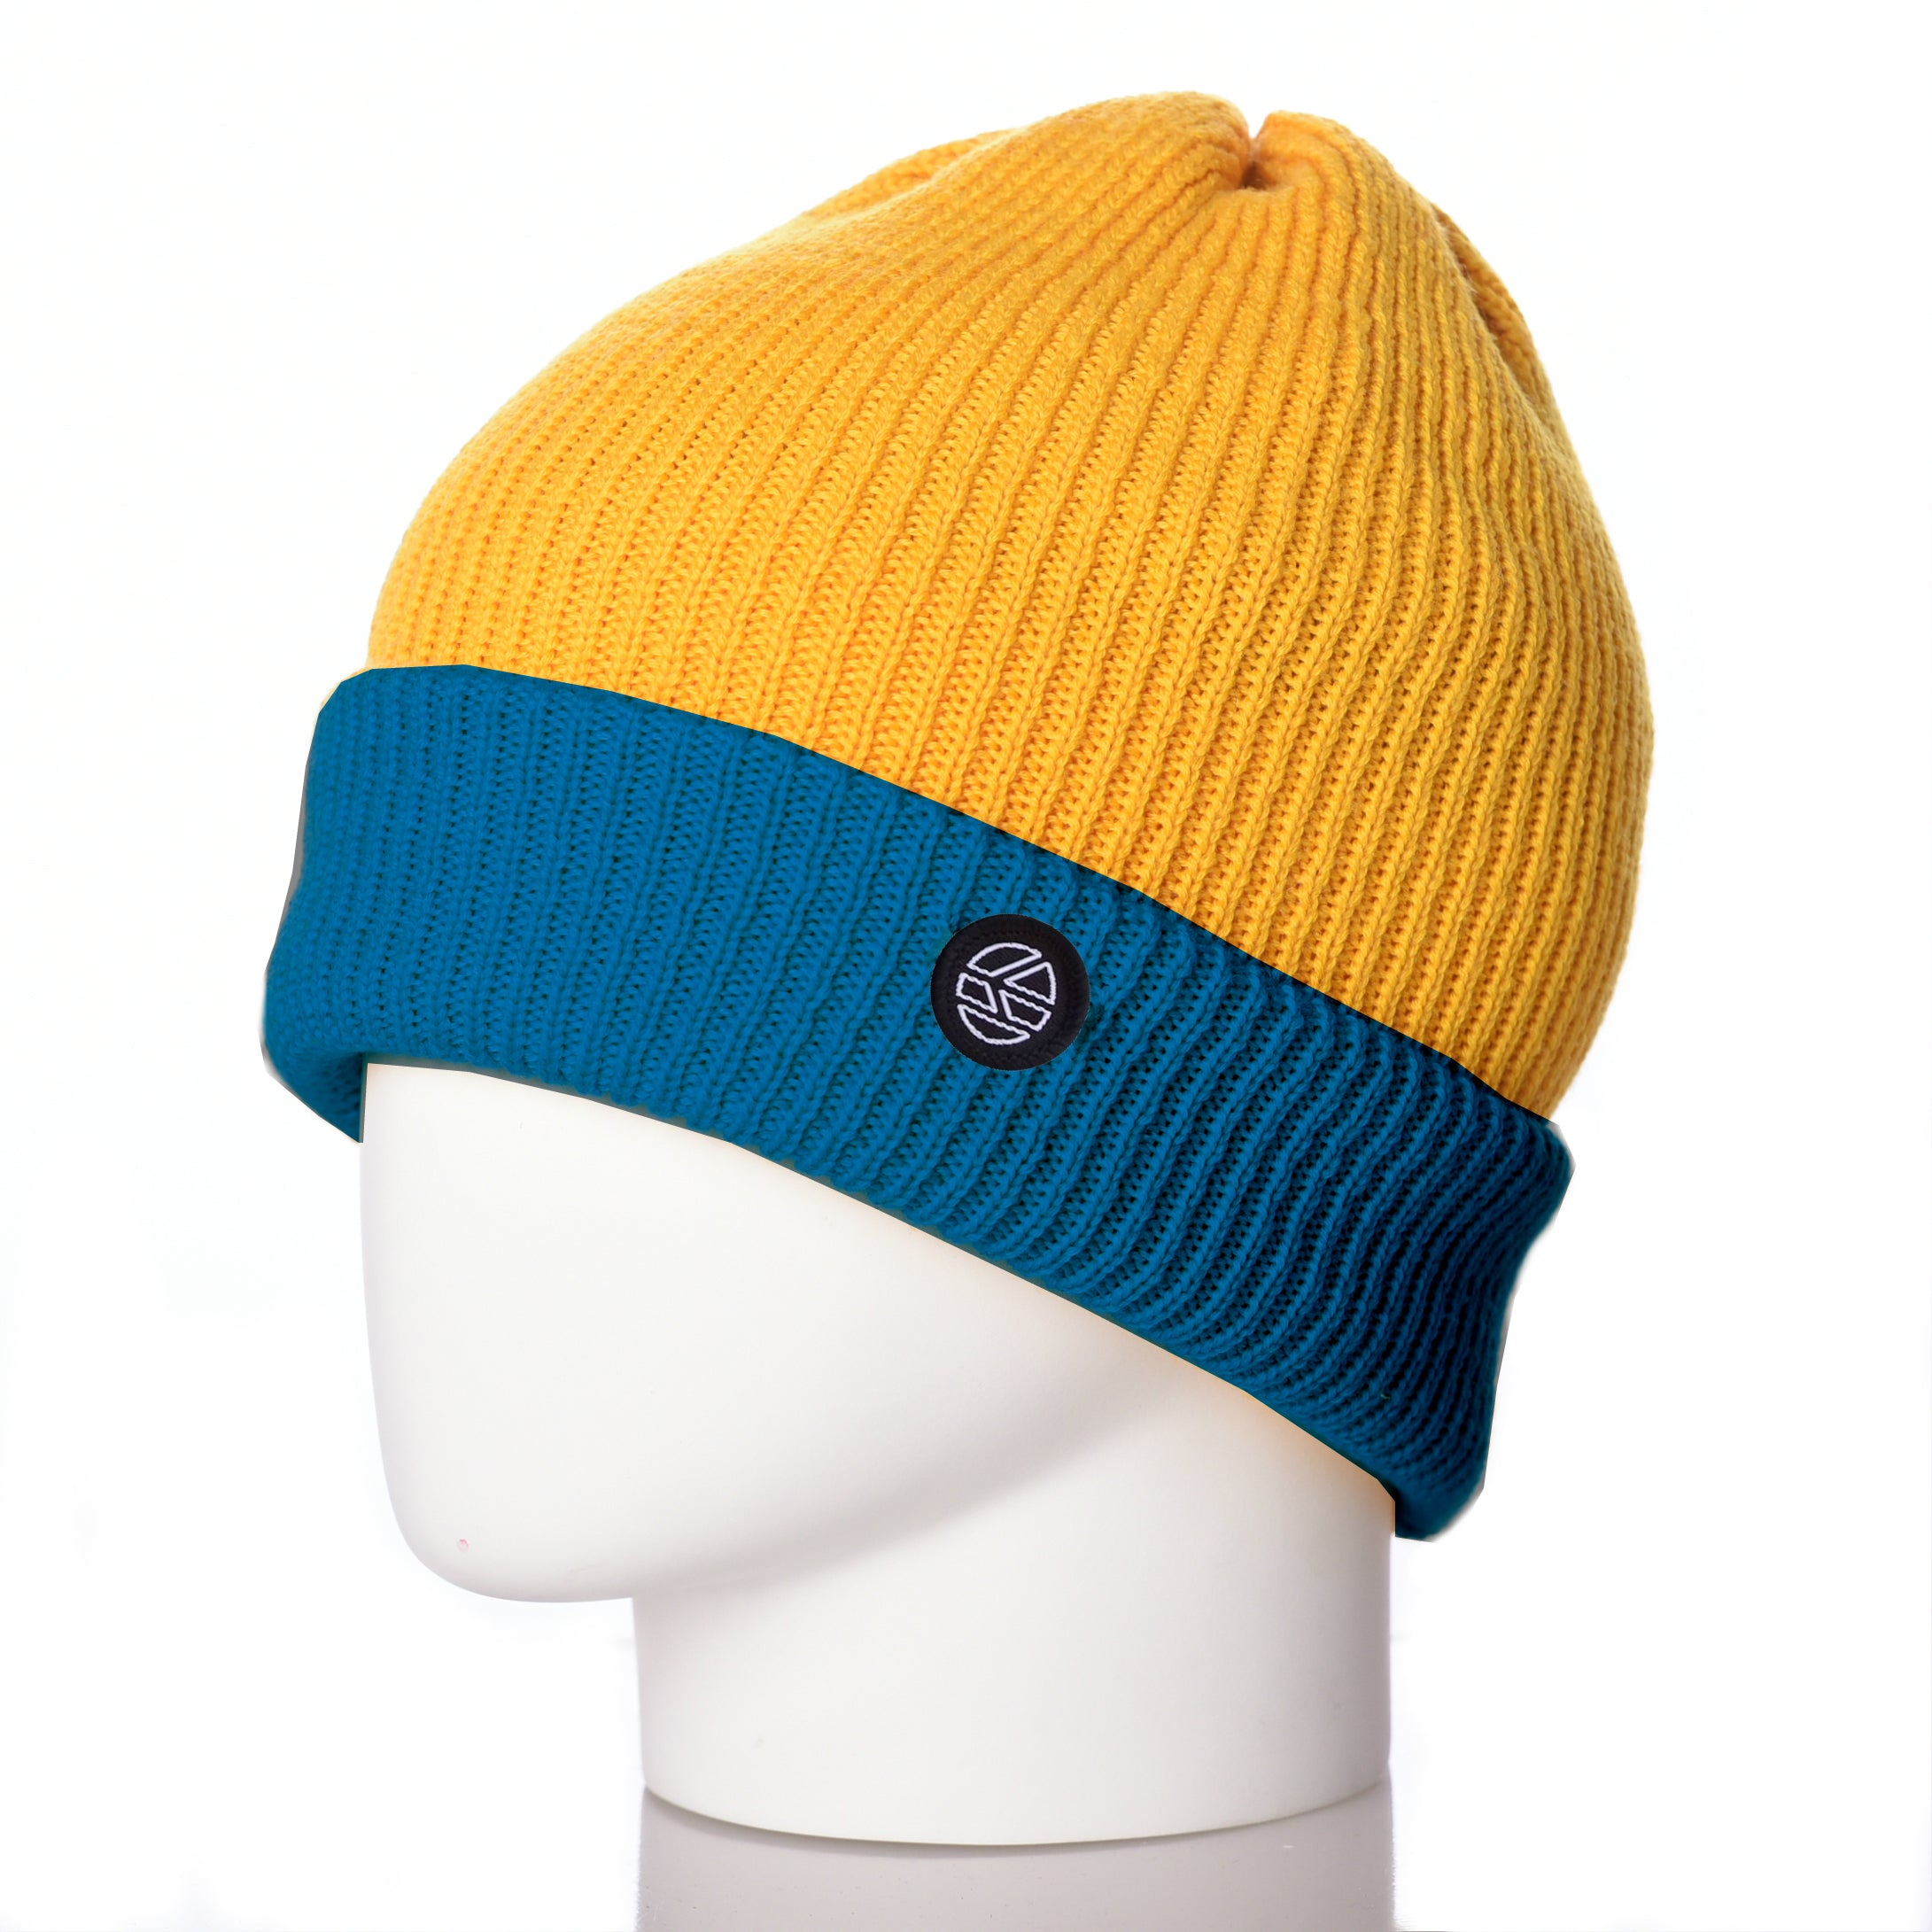 Bowen Turn Up Merino Wool Beanie - Turquoise/Yellow